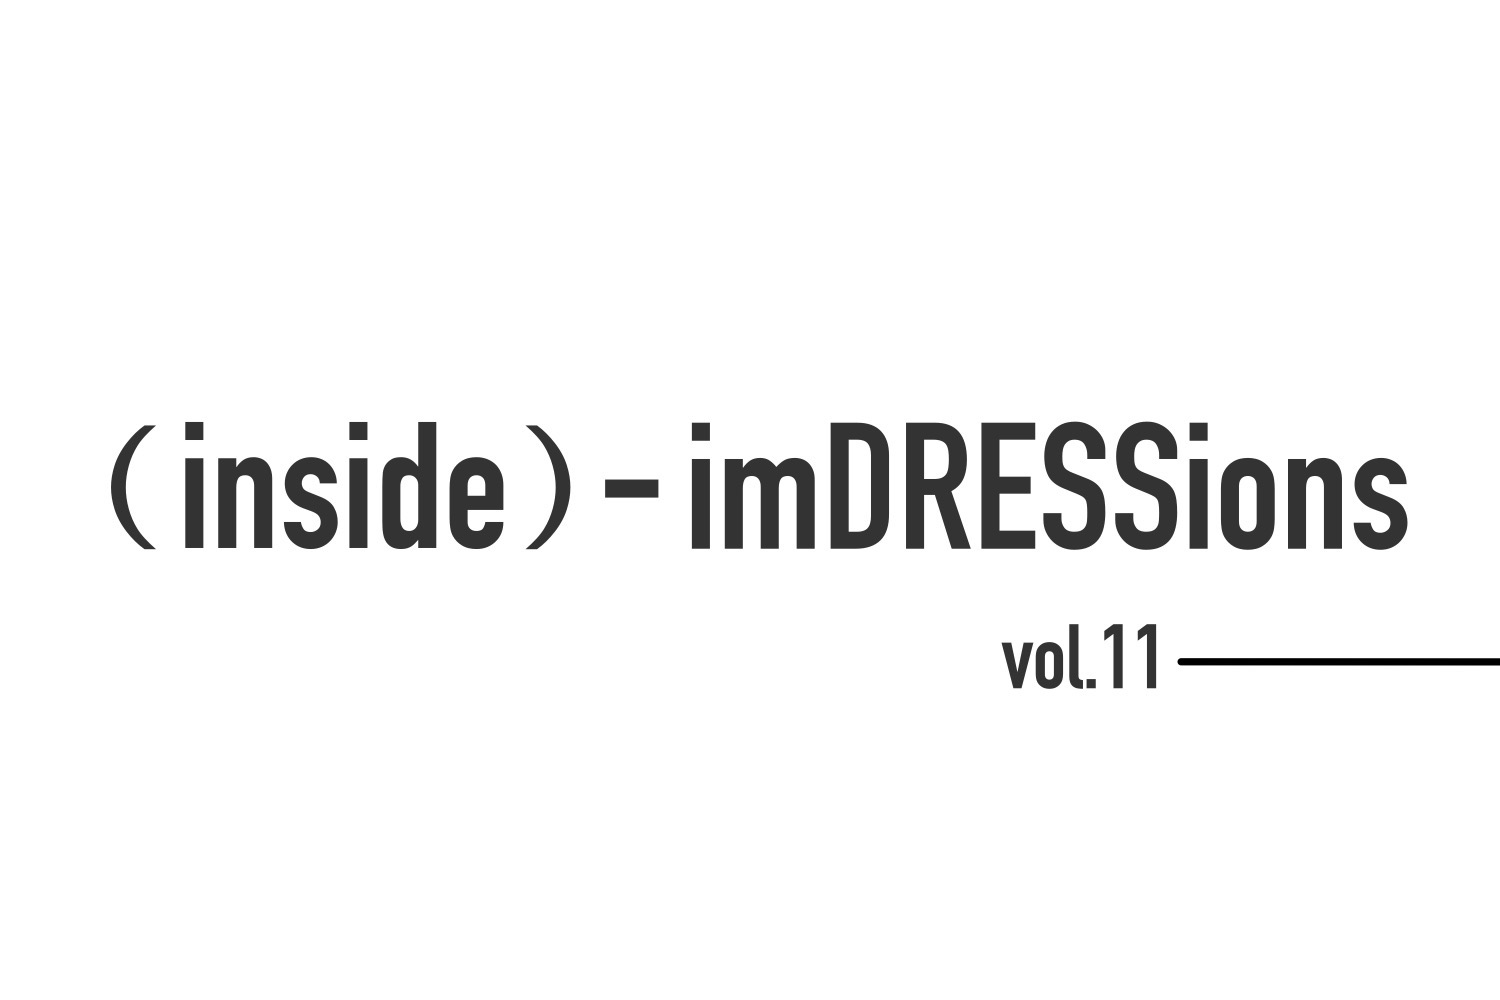 『(inside)-imDRESSions』 vol.11-らしい、写真。